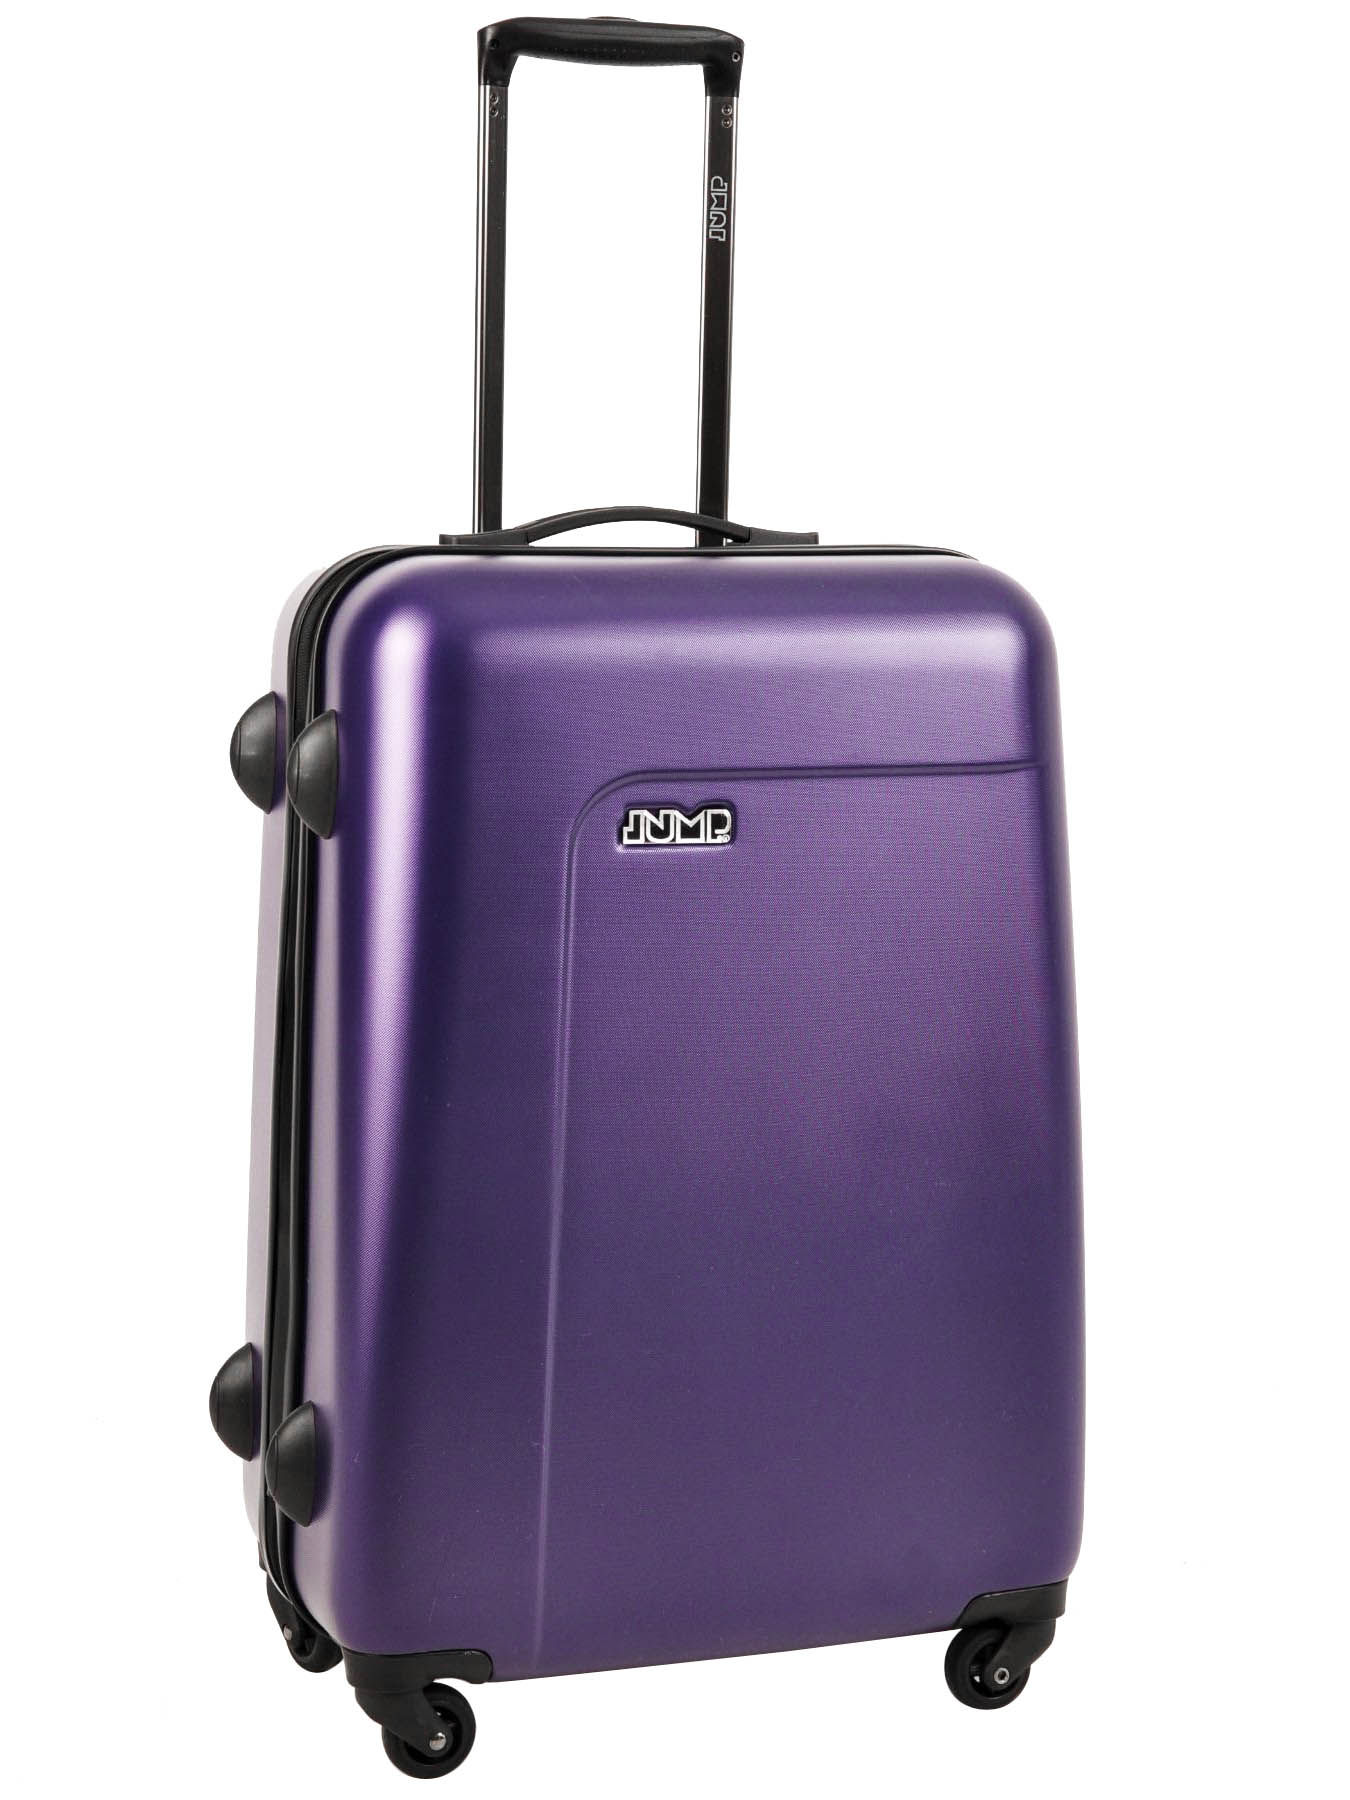 valise 4 roues rigide jump violet txc pc txc101 valise 4 roues. Black Bedroom Furniture Sets. Home Design Ideas